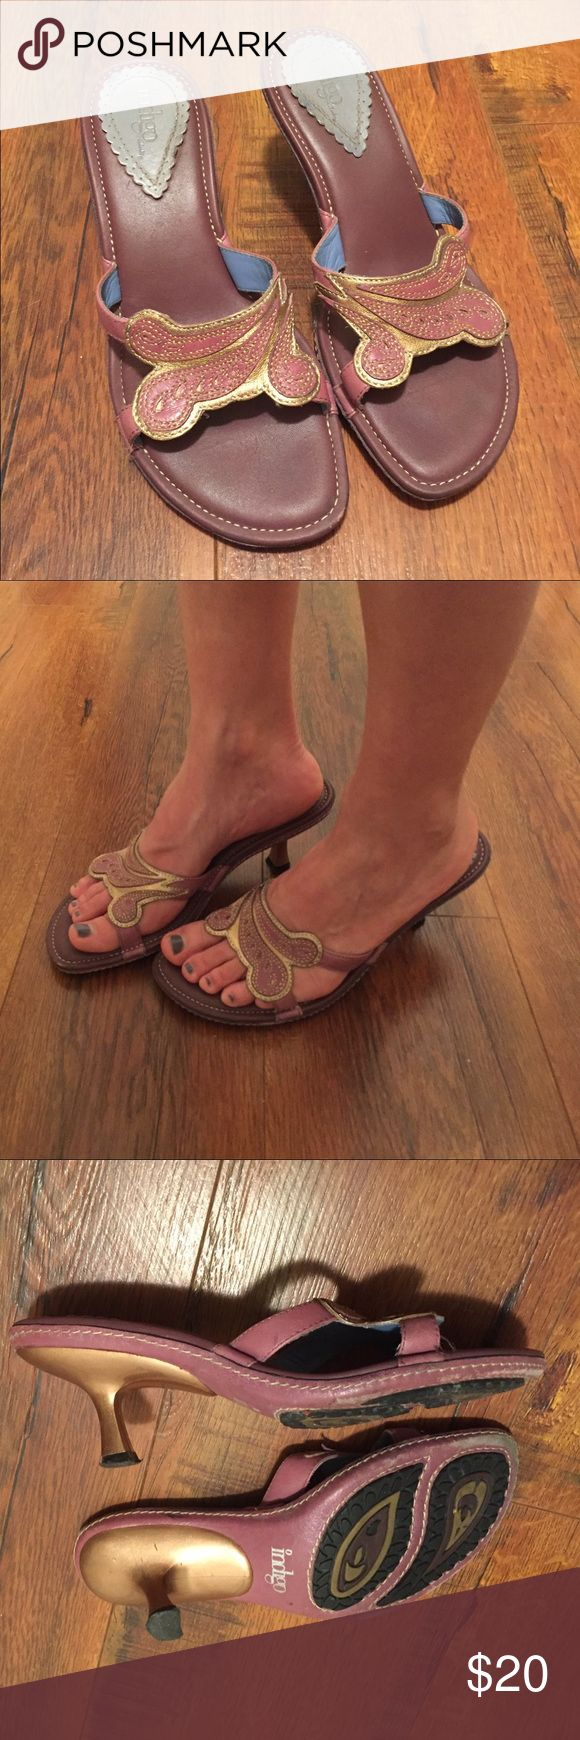 Clarks Sandals, 1 inch heel Showing signs of wear, but still cute, comfy, and have some wear left in them. I stopped wearing heals as much and need to clean out closet. Clarks Shoes Sandals